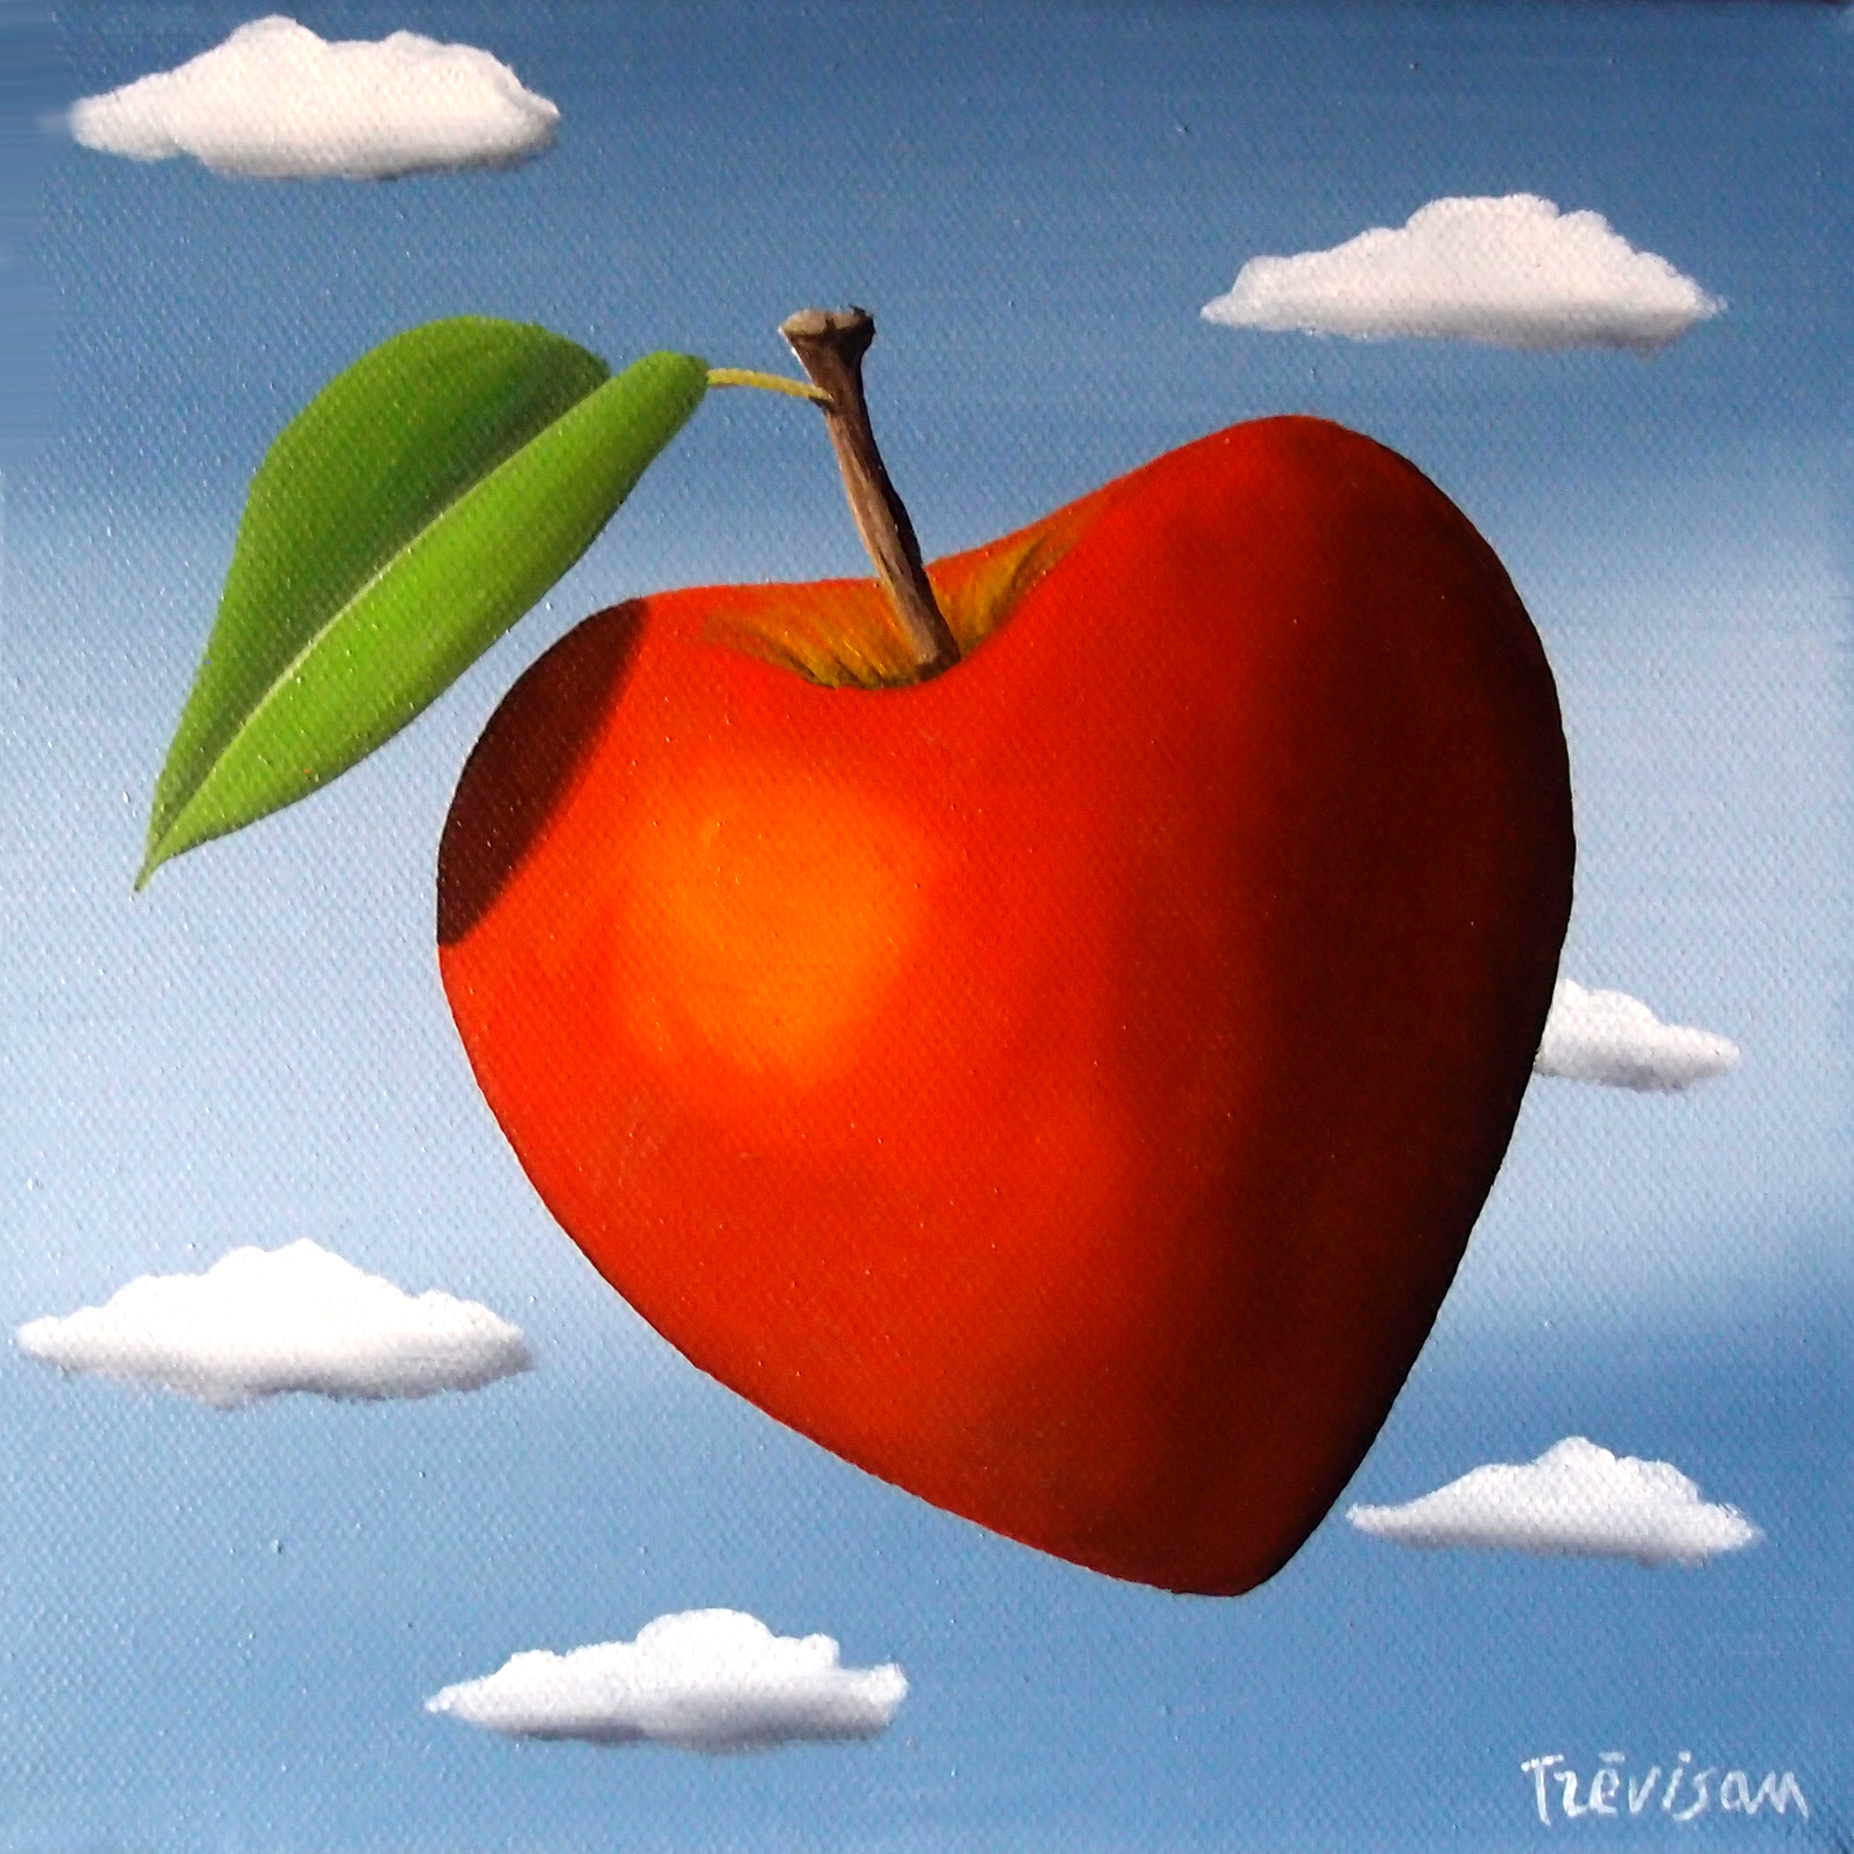 'Love Apple', Oil on canvas, 20 x 20 cm, £300